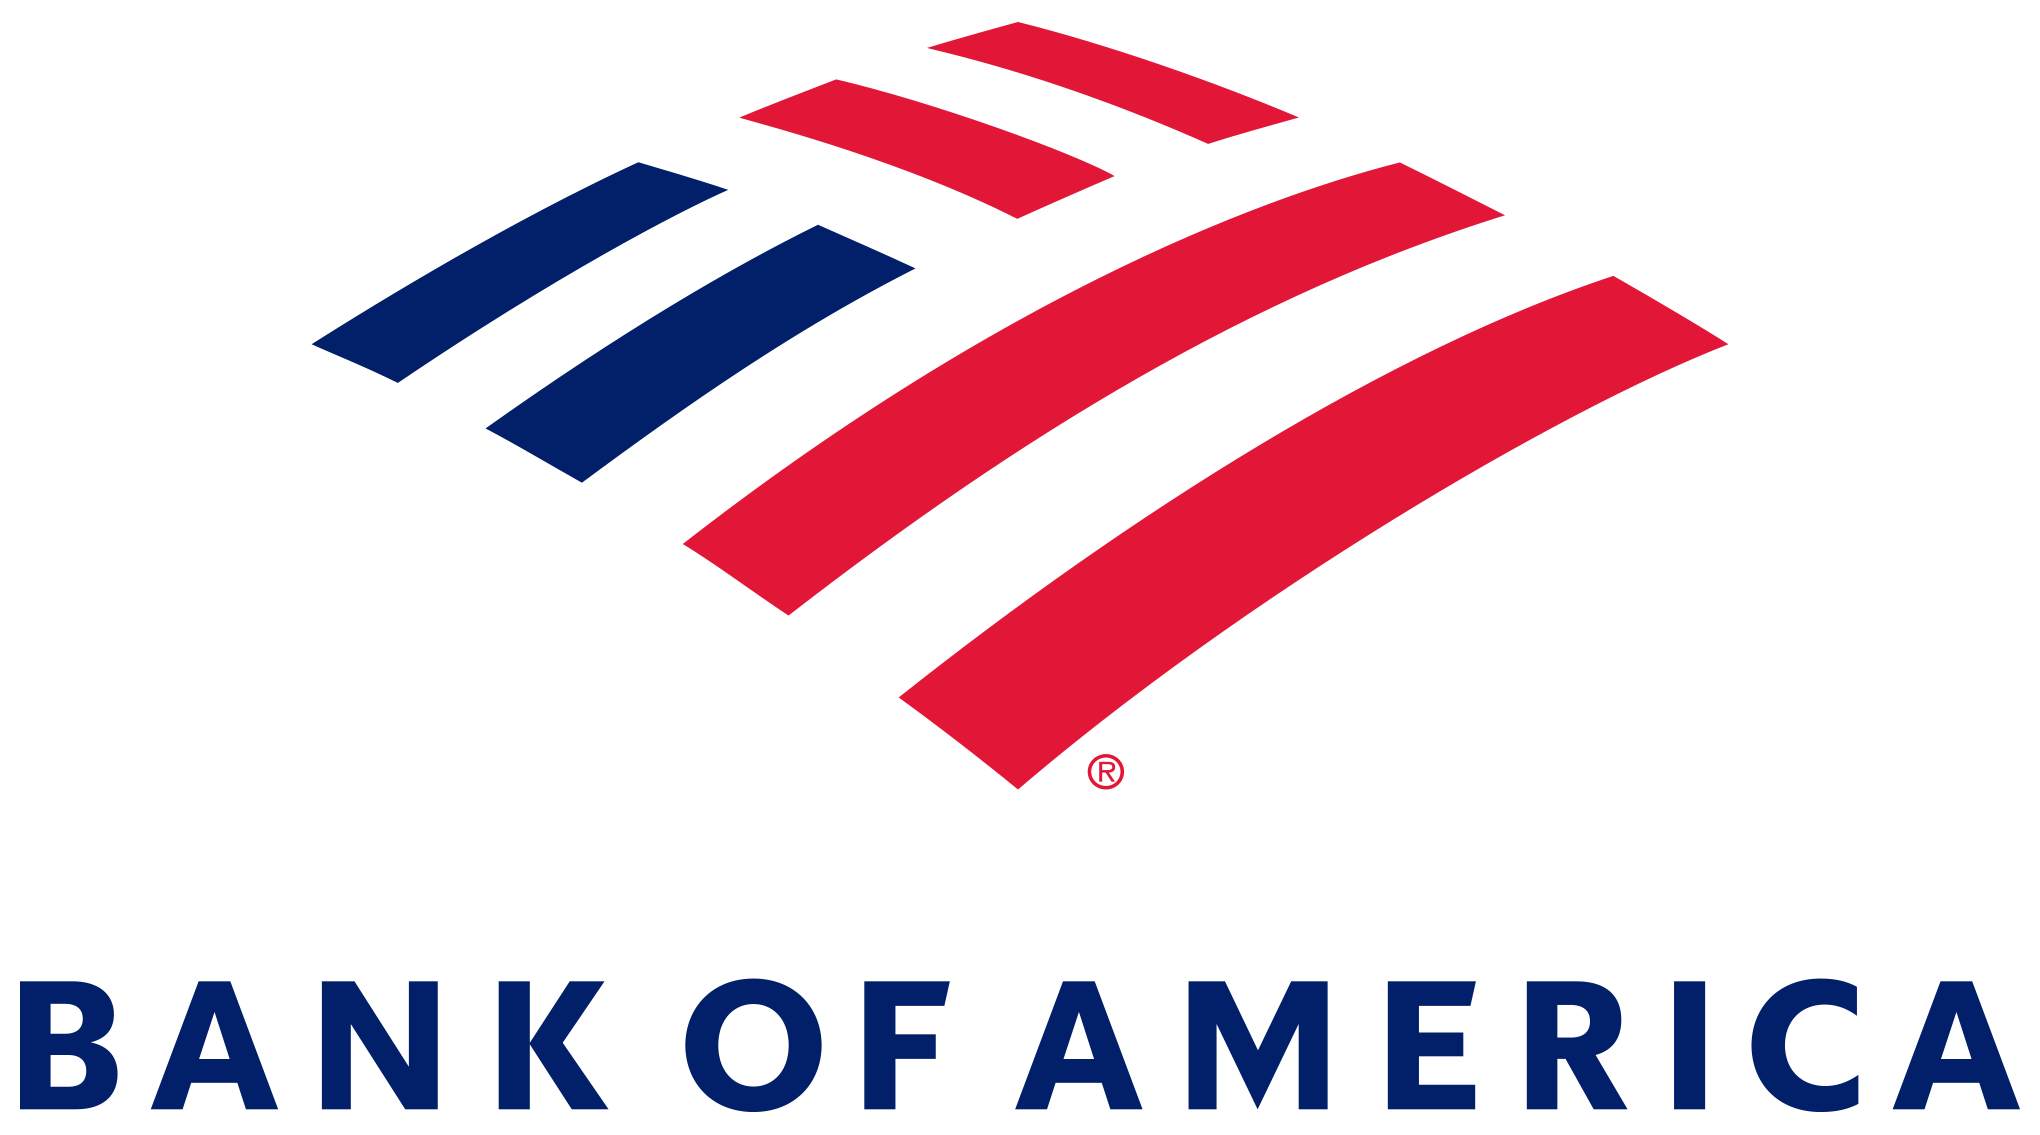 Image result for banck of amaerica logo""